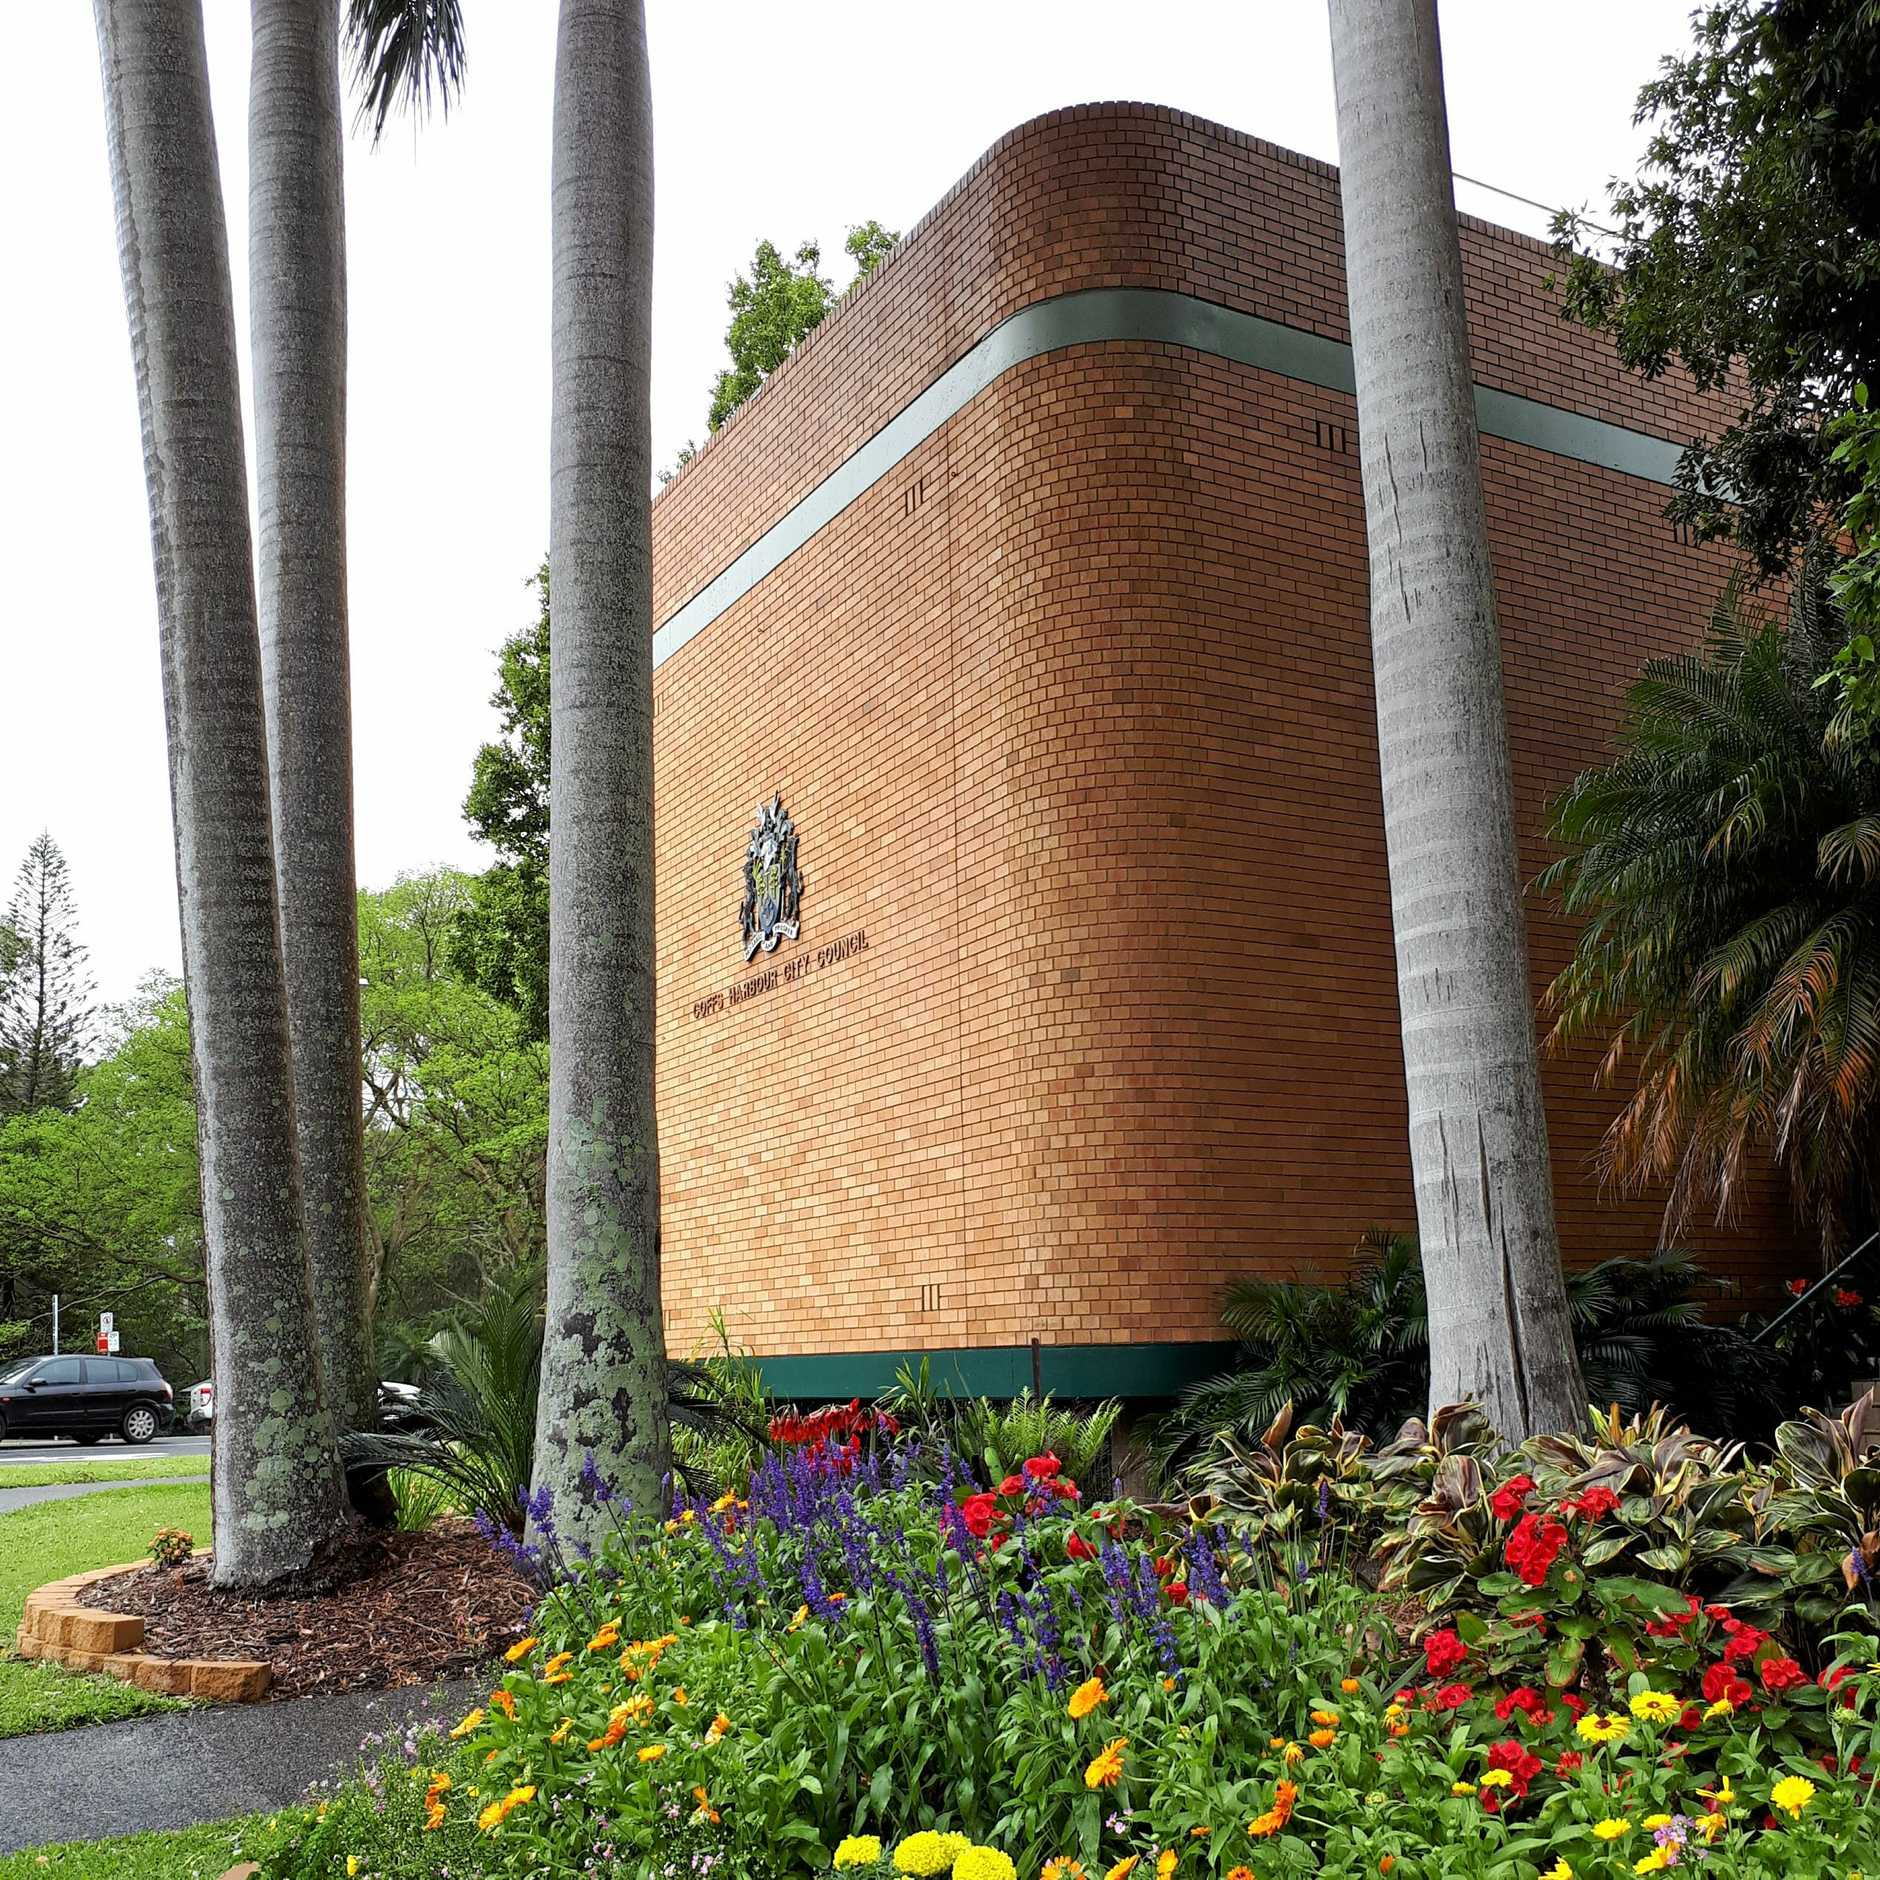 The next election for Coffs Harbour City Council takes place in 2020.